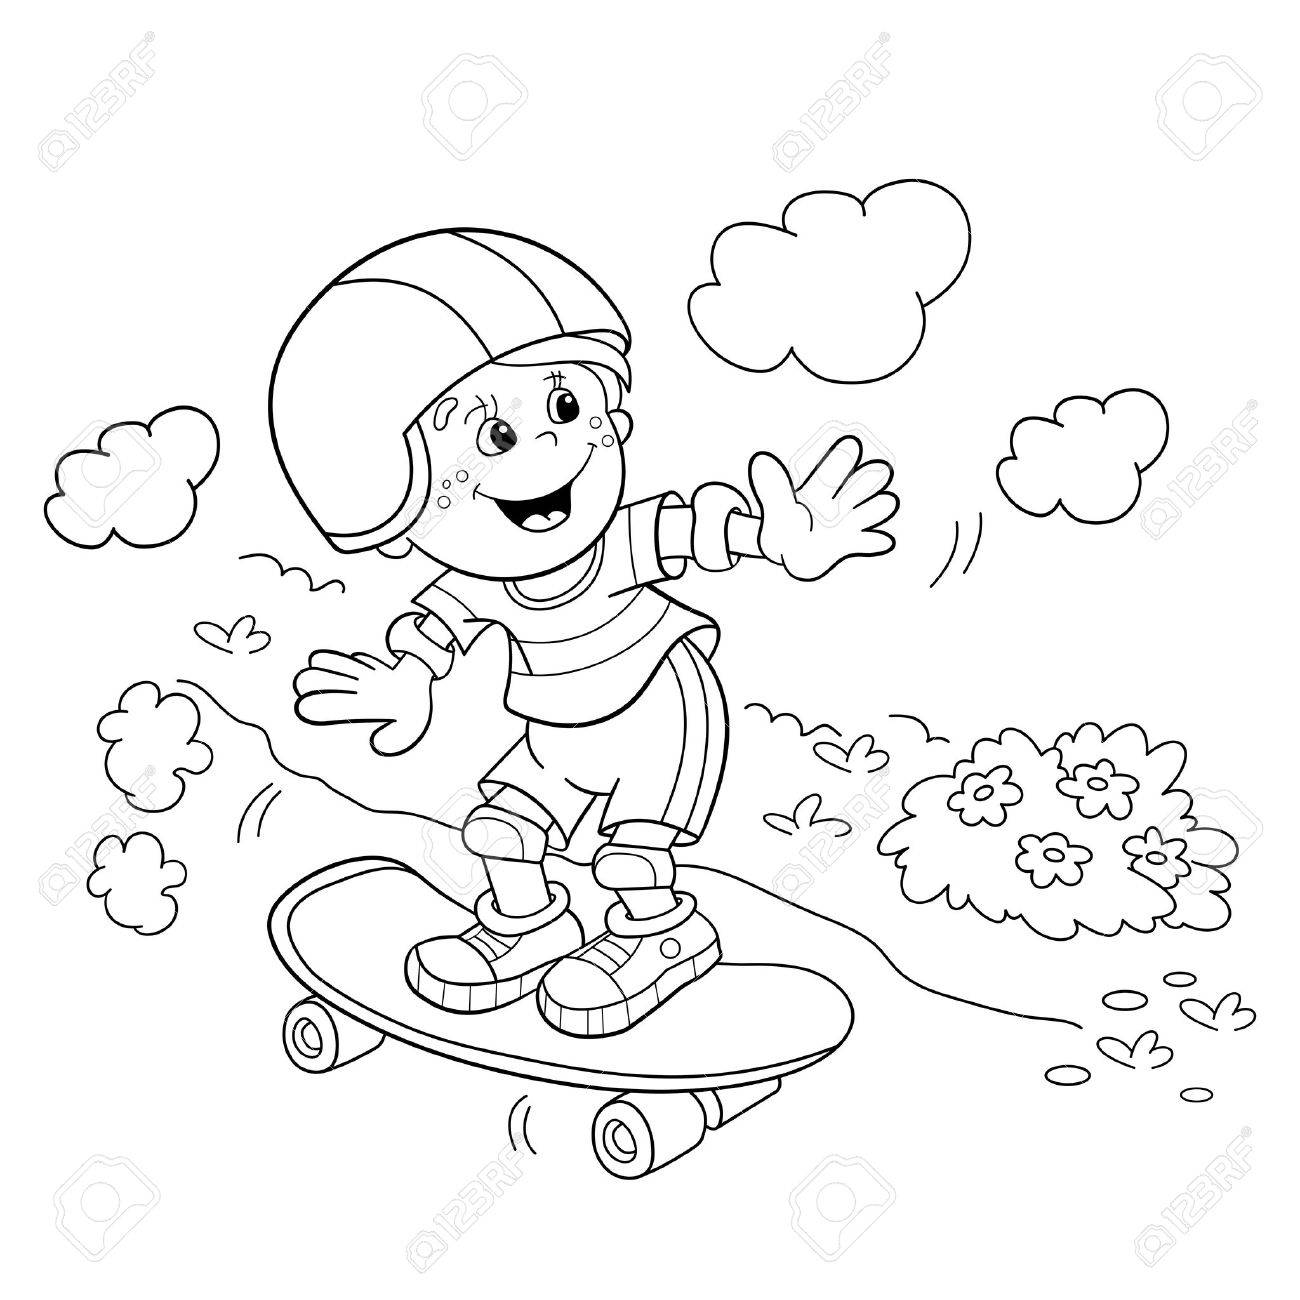 cool skateboarding Free Download | Coloring pages, Skateboard party, Space coloring  pages | 1300x1300